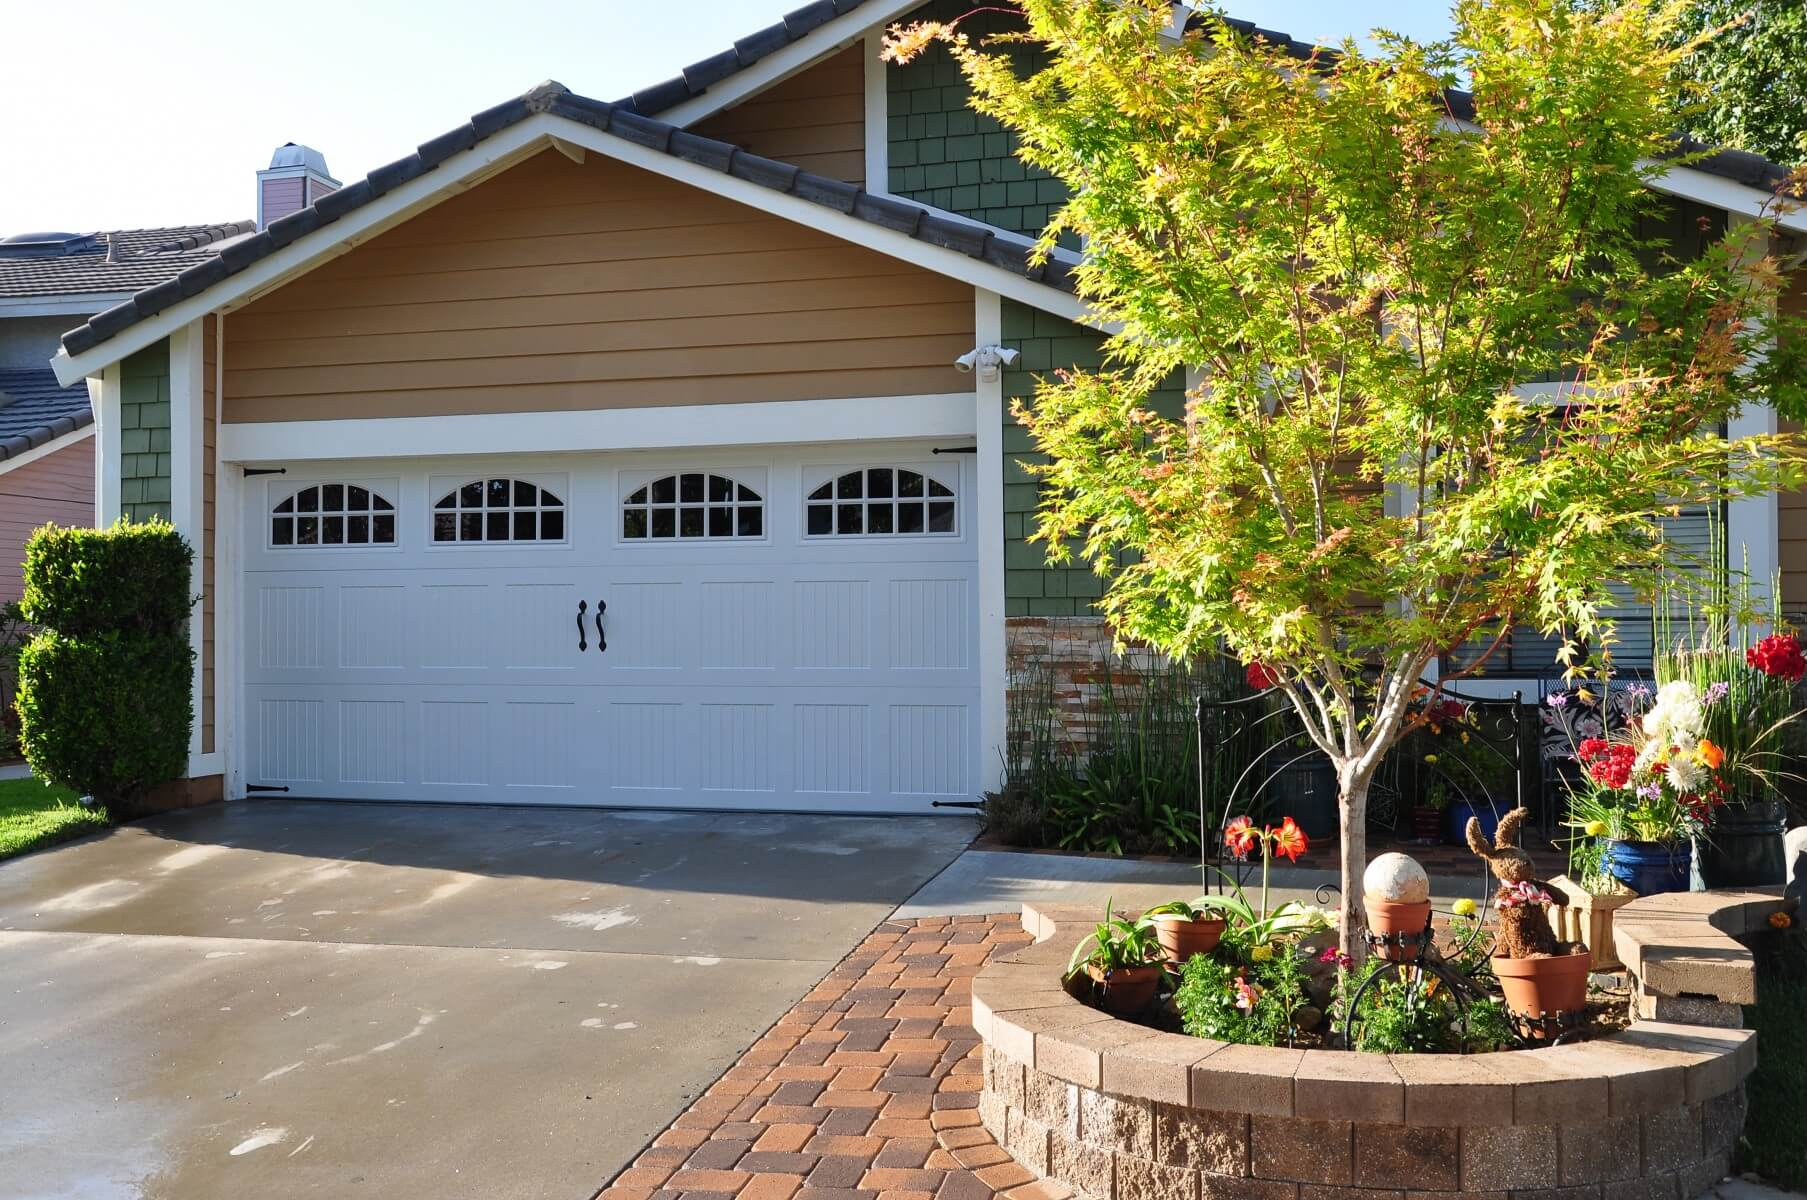 Better curb appeal at this simi valley home with a new garage door after simi valley garage door replacement 1 rubansaba